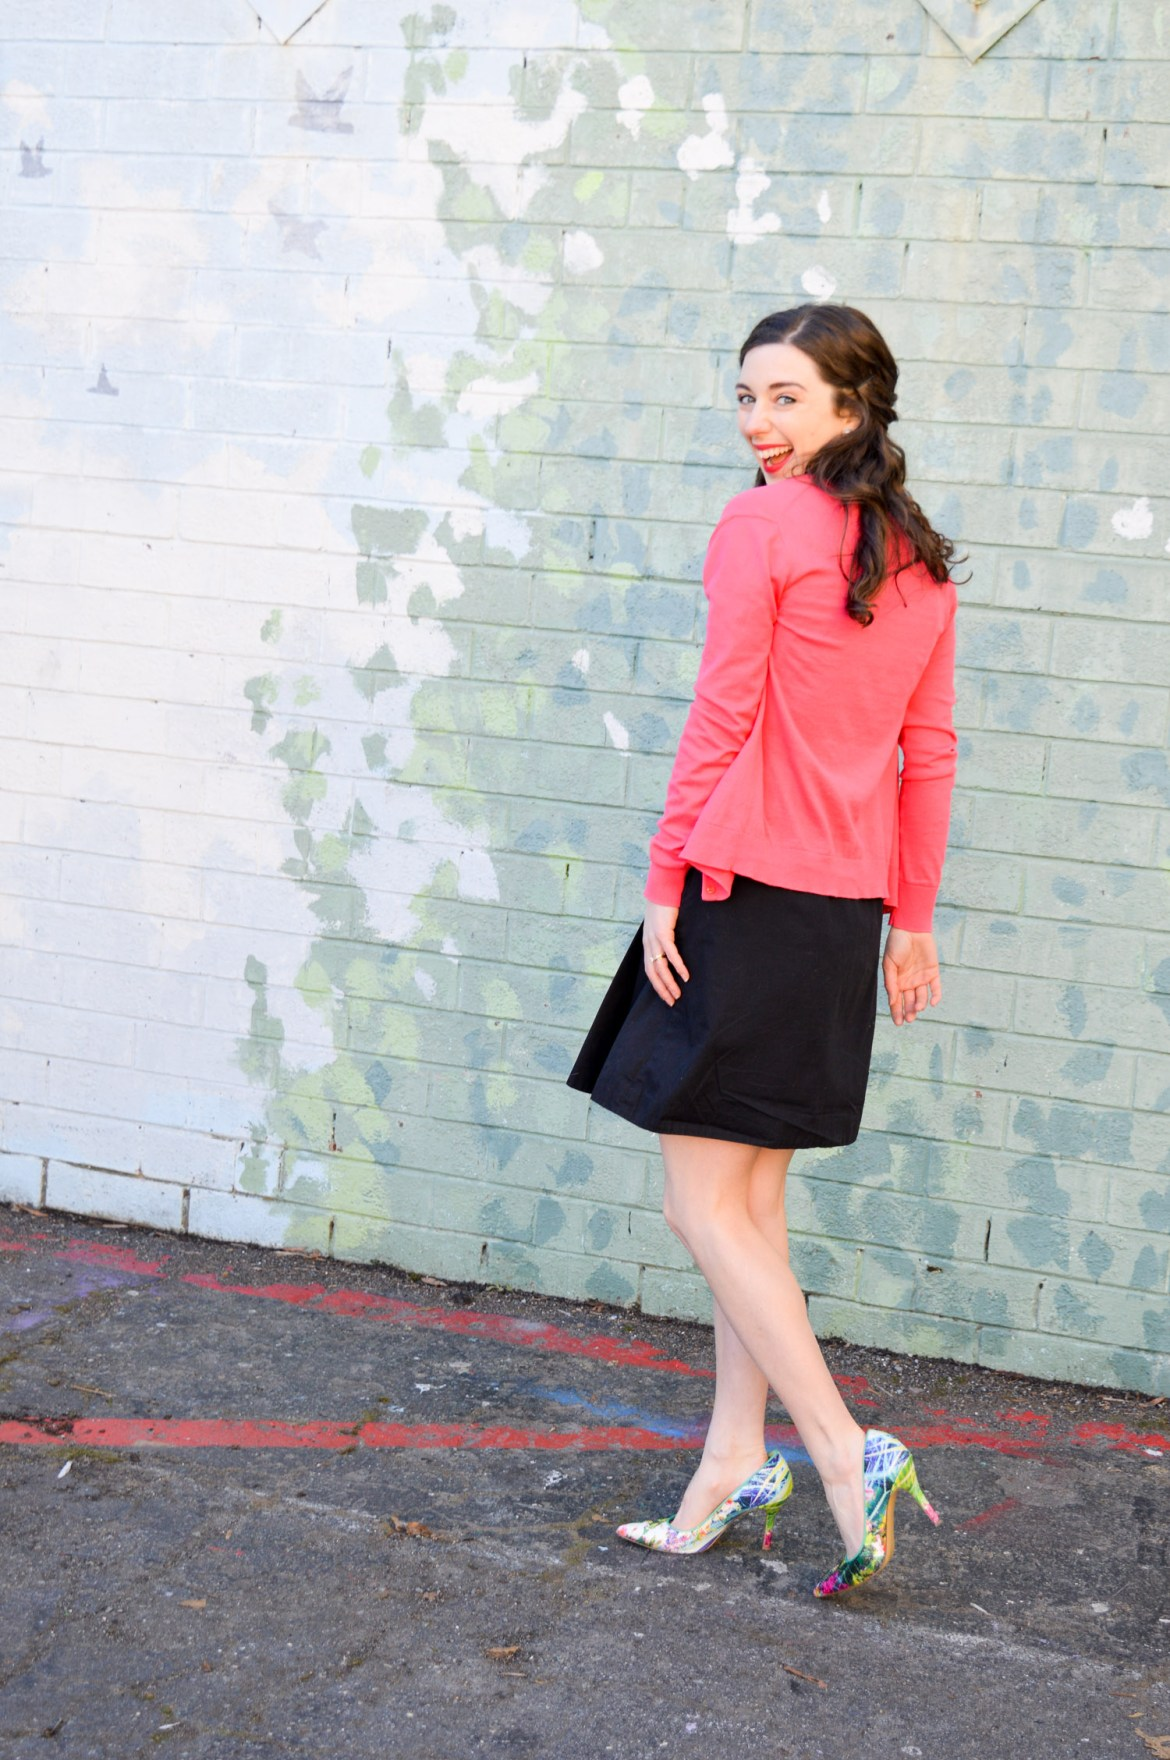 f3c7a617b8a 3 Ways to Wear Your Little Black Dress    Pink Cardigan + Floral Heels